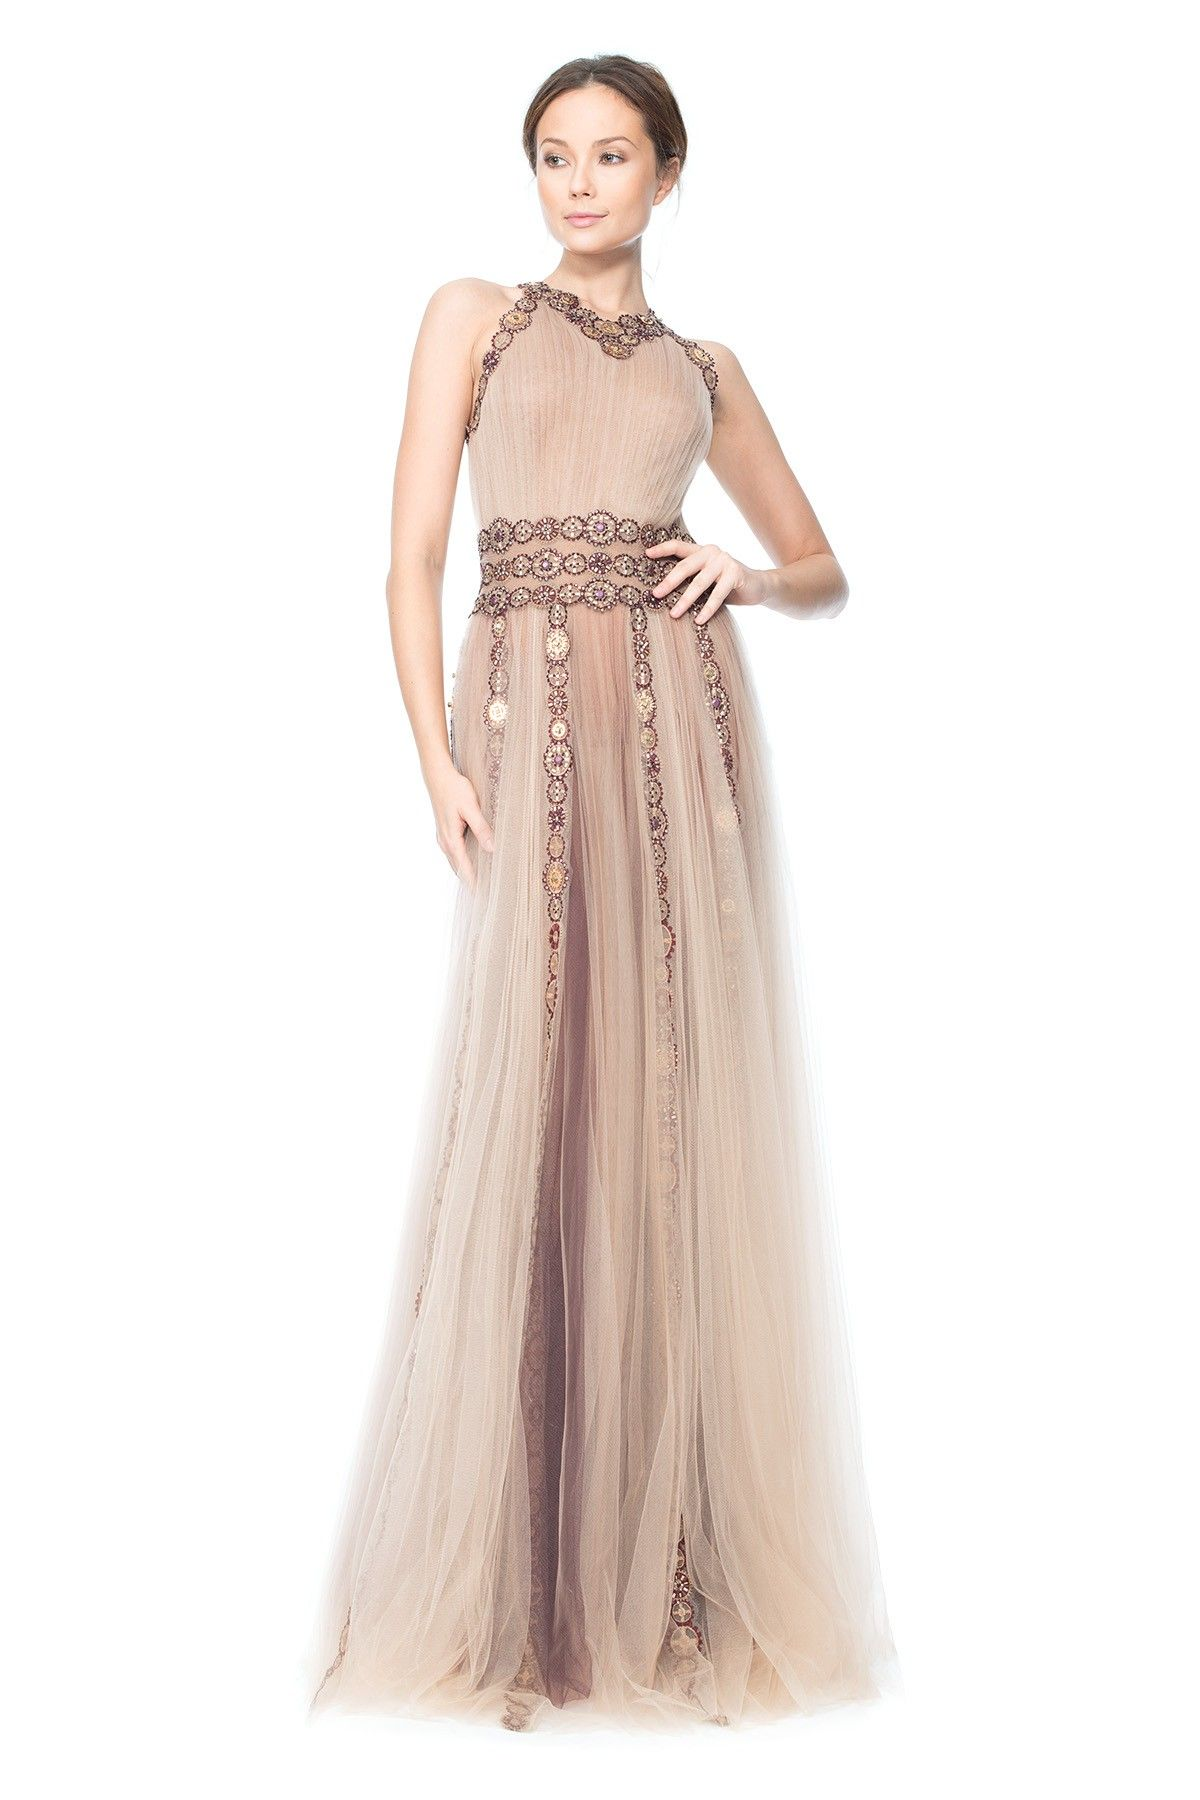 Aquila Gown